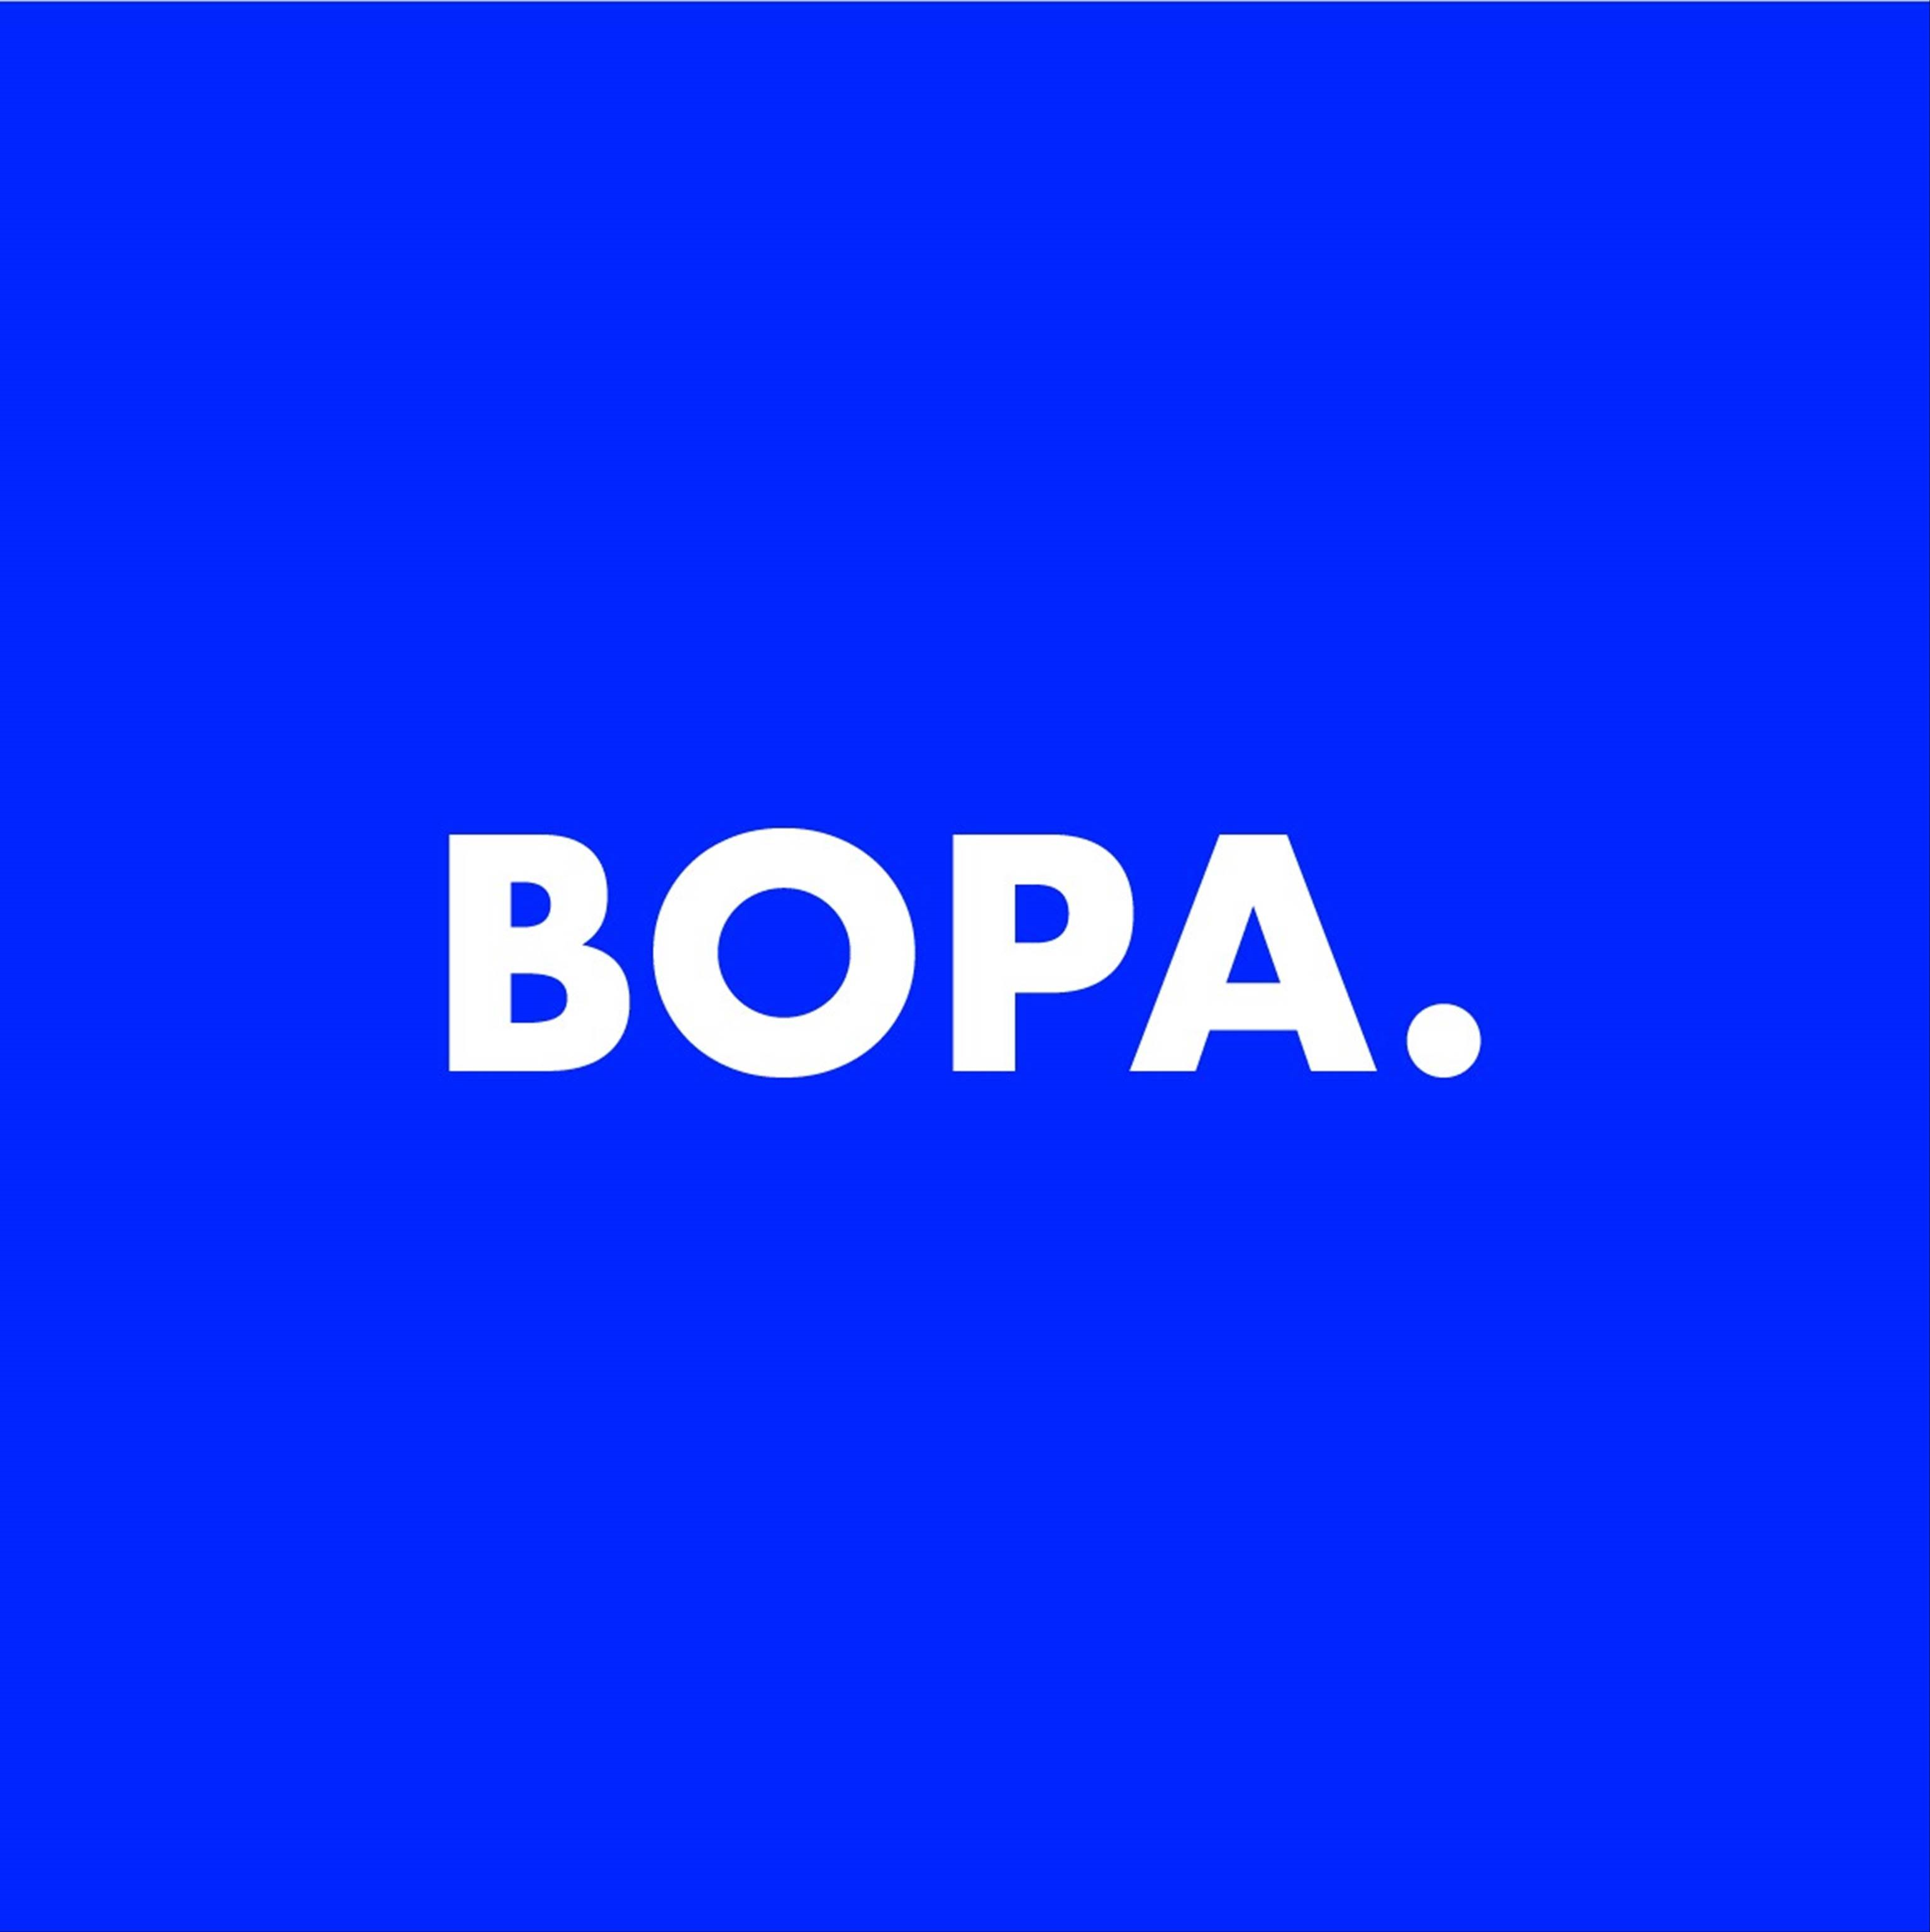 BOPA Nominated for CEE Legal Matters Deal of the Year